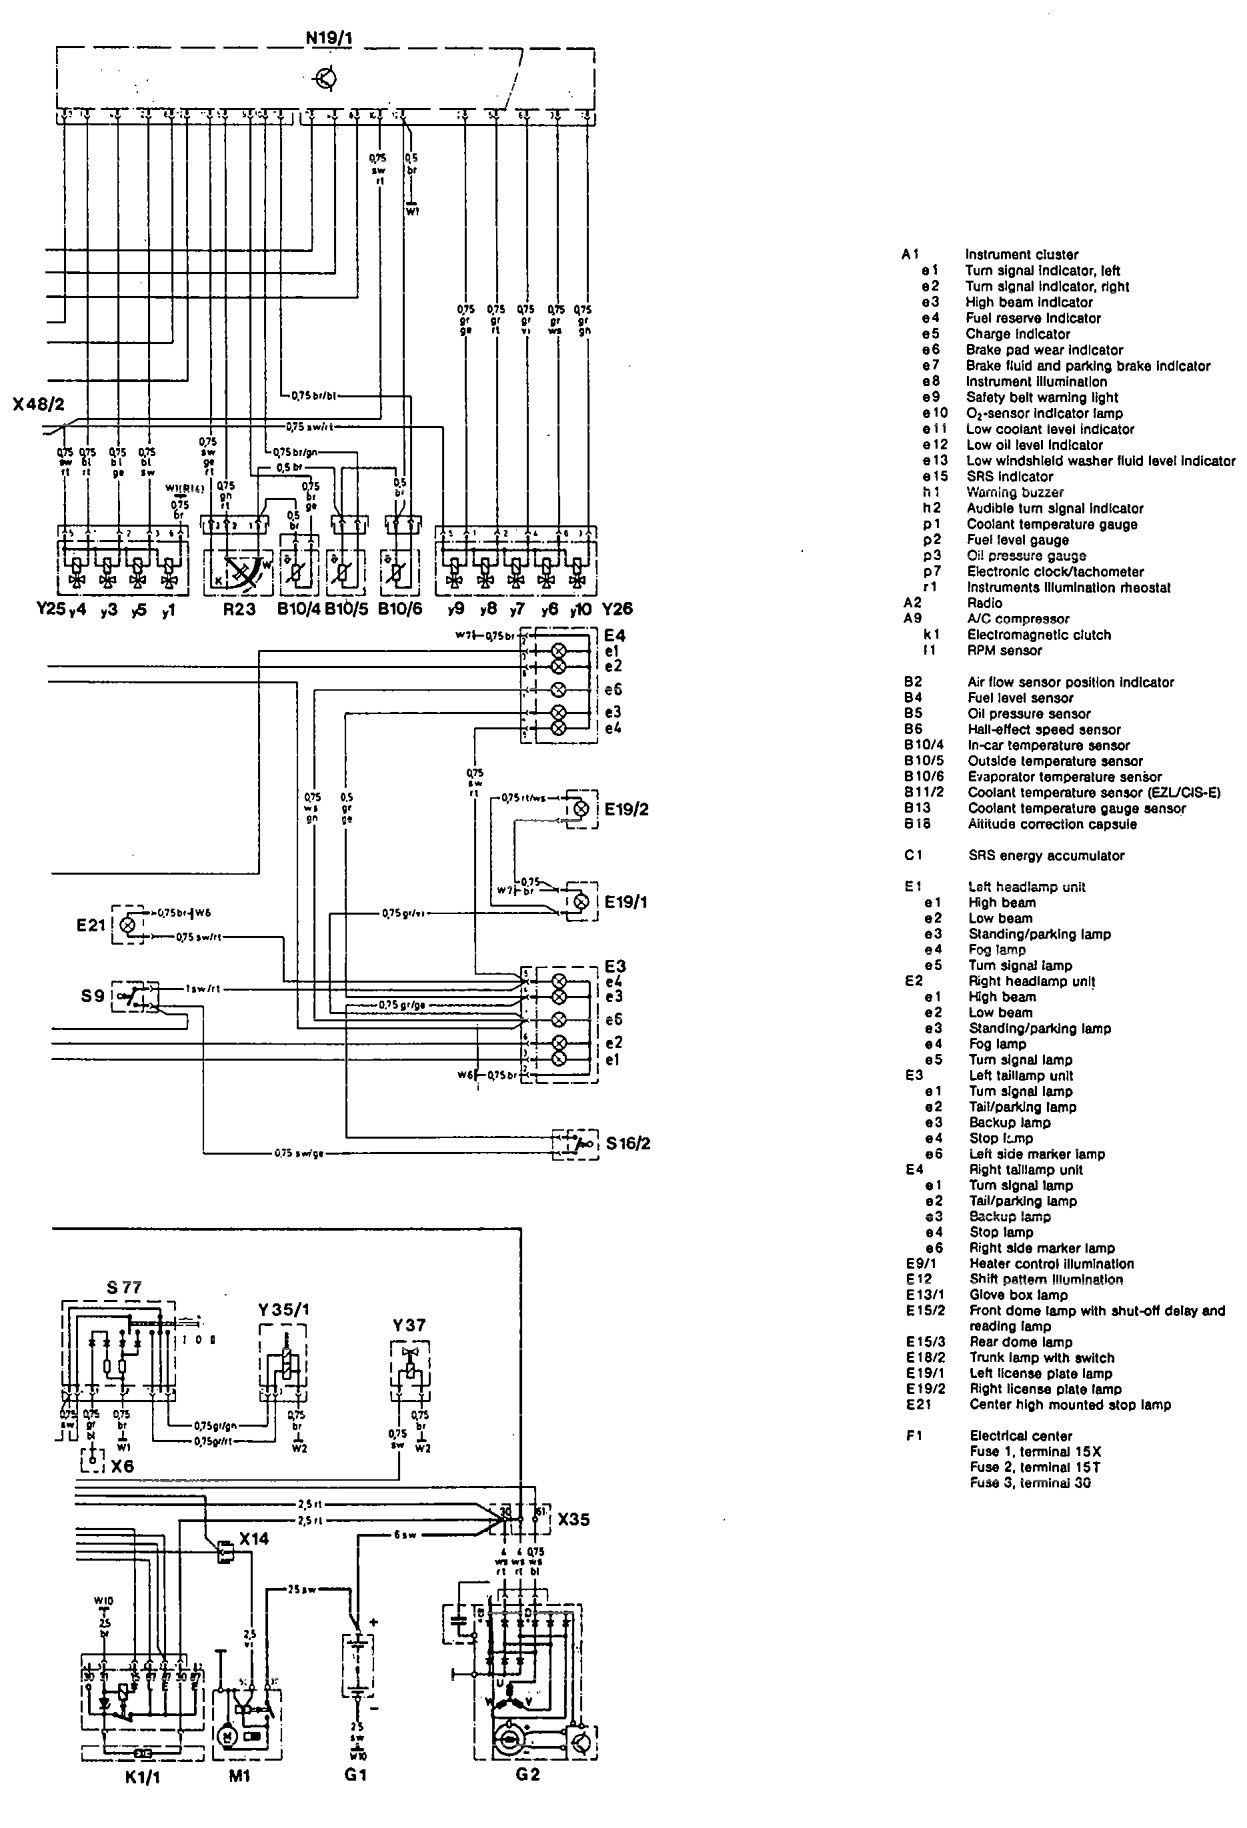 Mercedes Benz 190e 1992 Wiring Diagrams Starting Carknowledge 92 Honda Civic Chassis Diagram